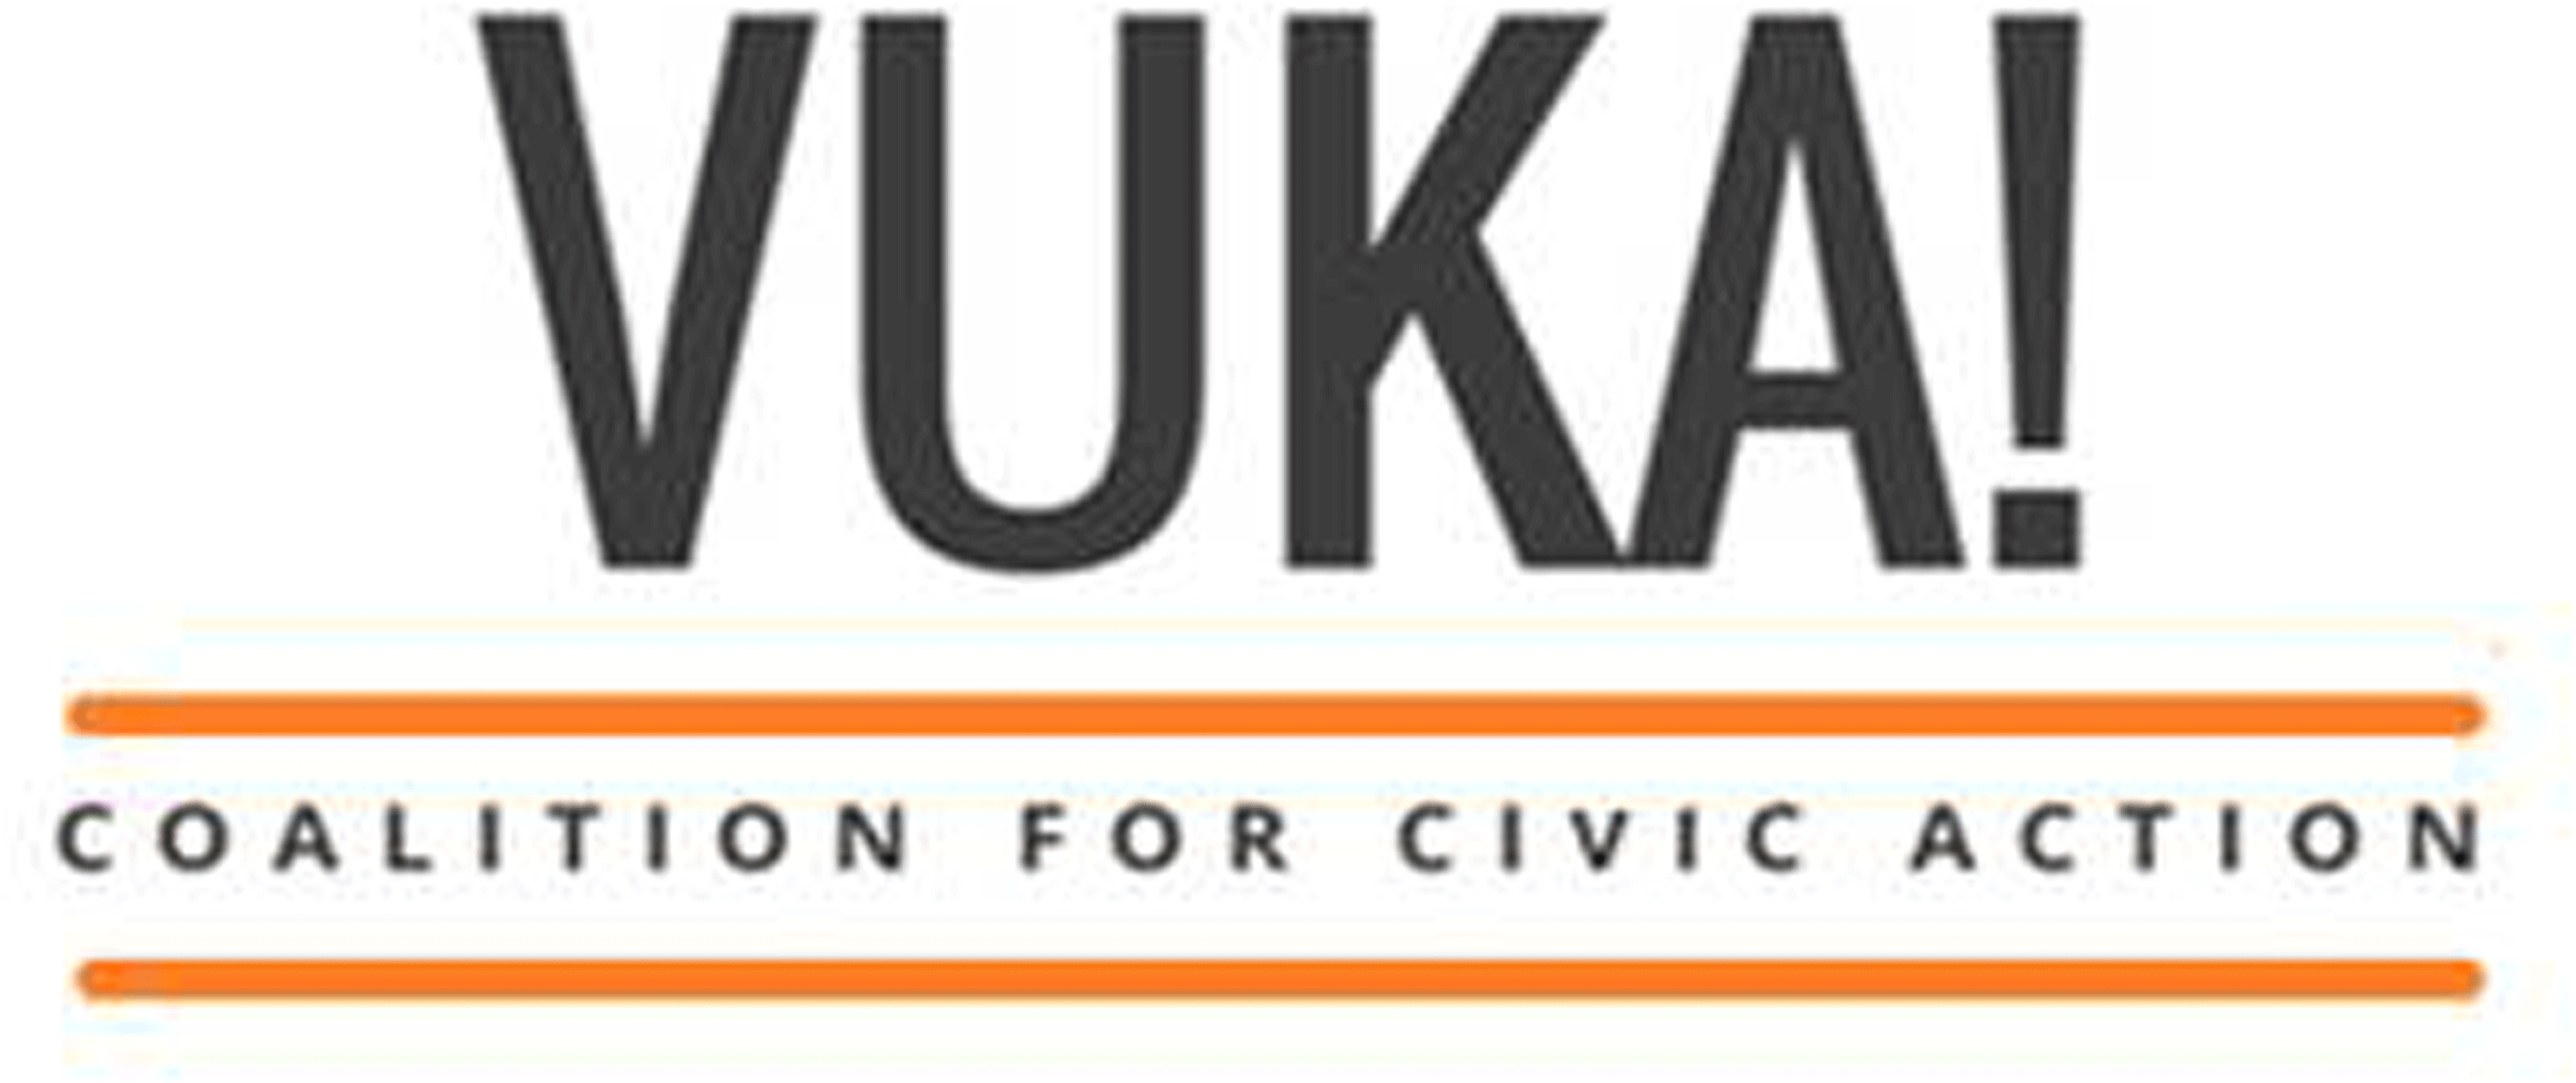 Vuka! Coalition for civic action, logo